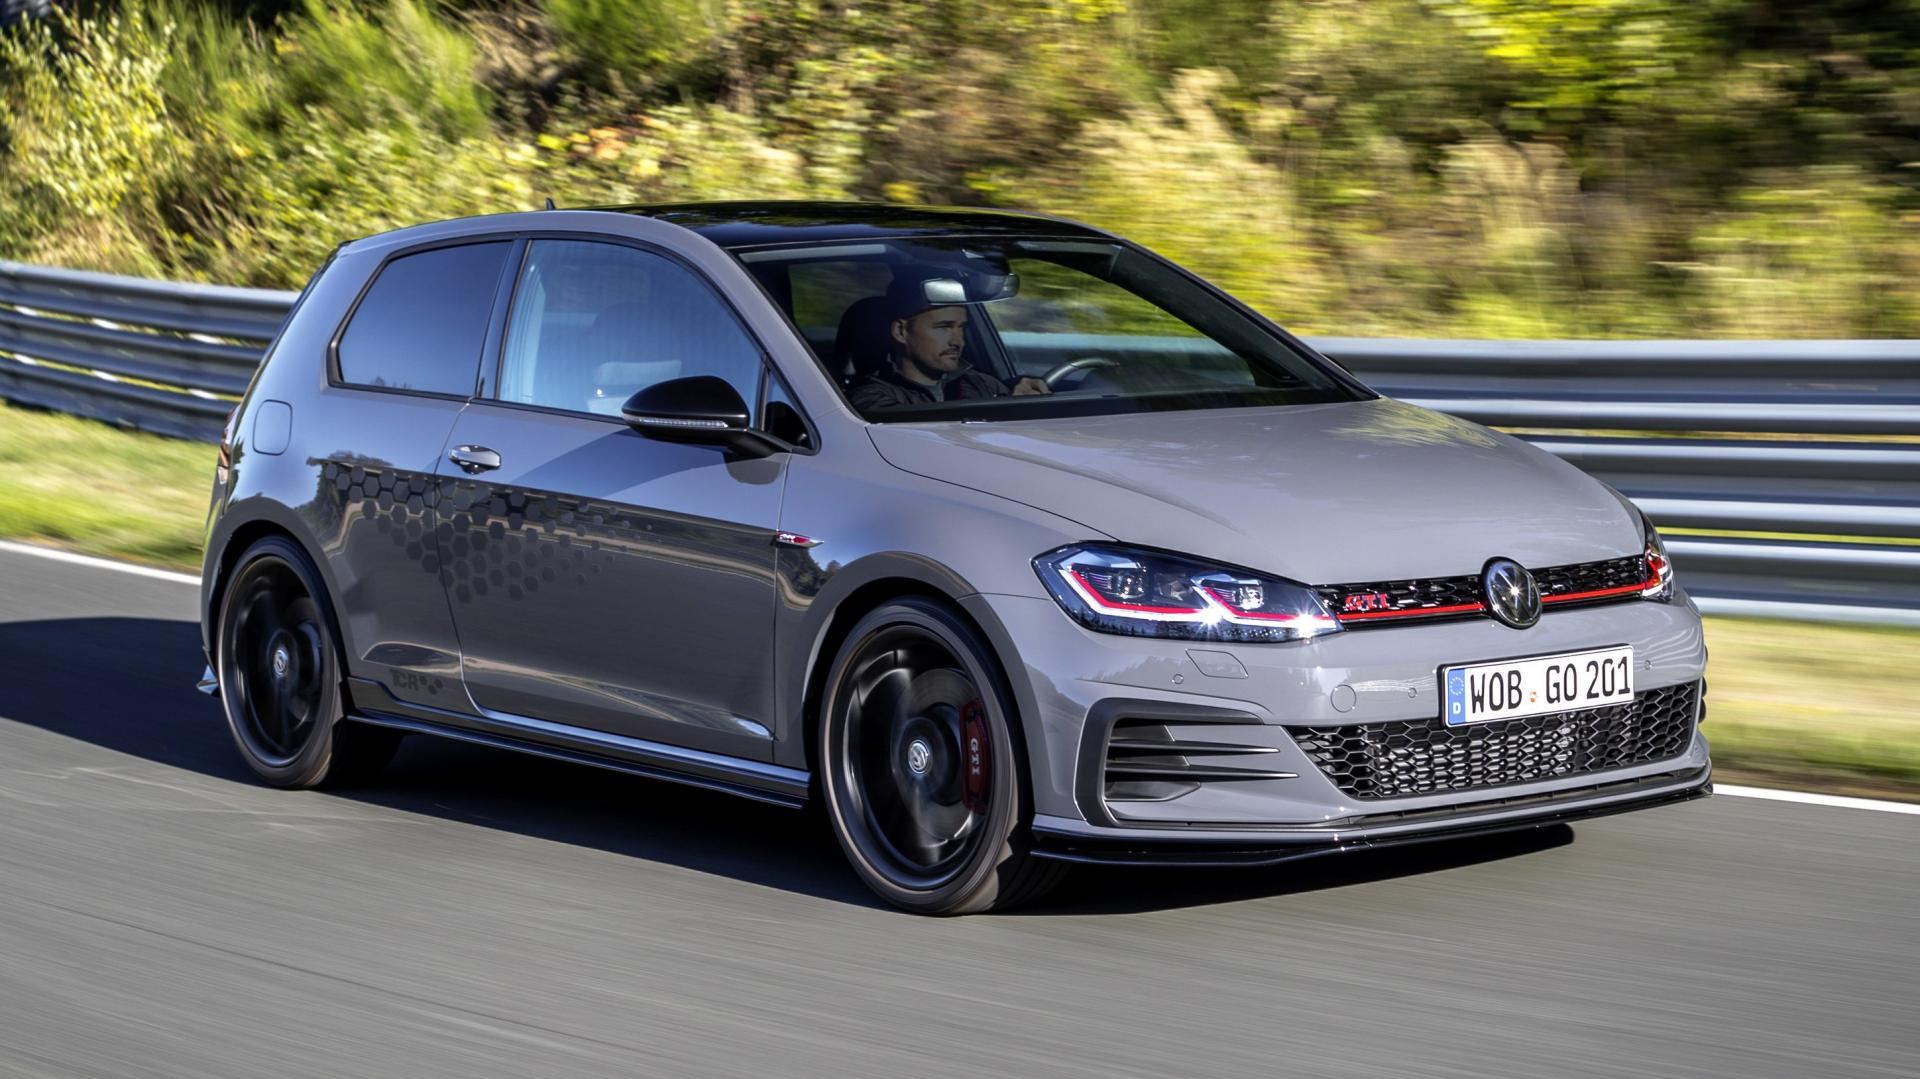 prijs volkswagen golf gti tcr is bekend topgear. Black Bedroom Furniture Sets. Home Design Ideas